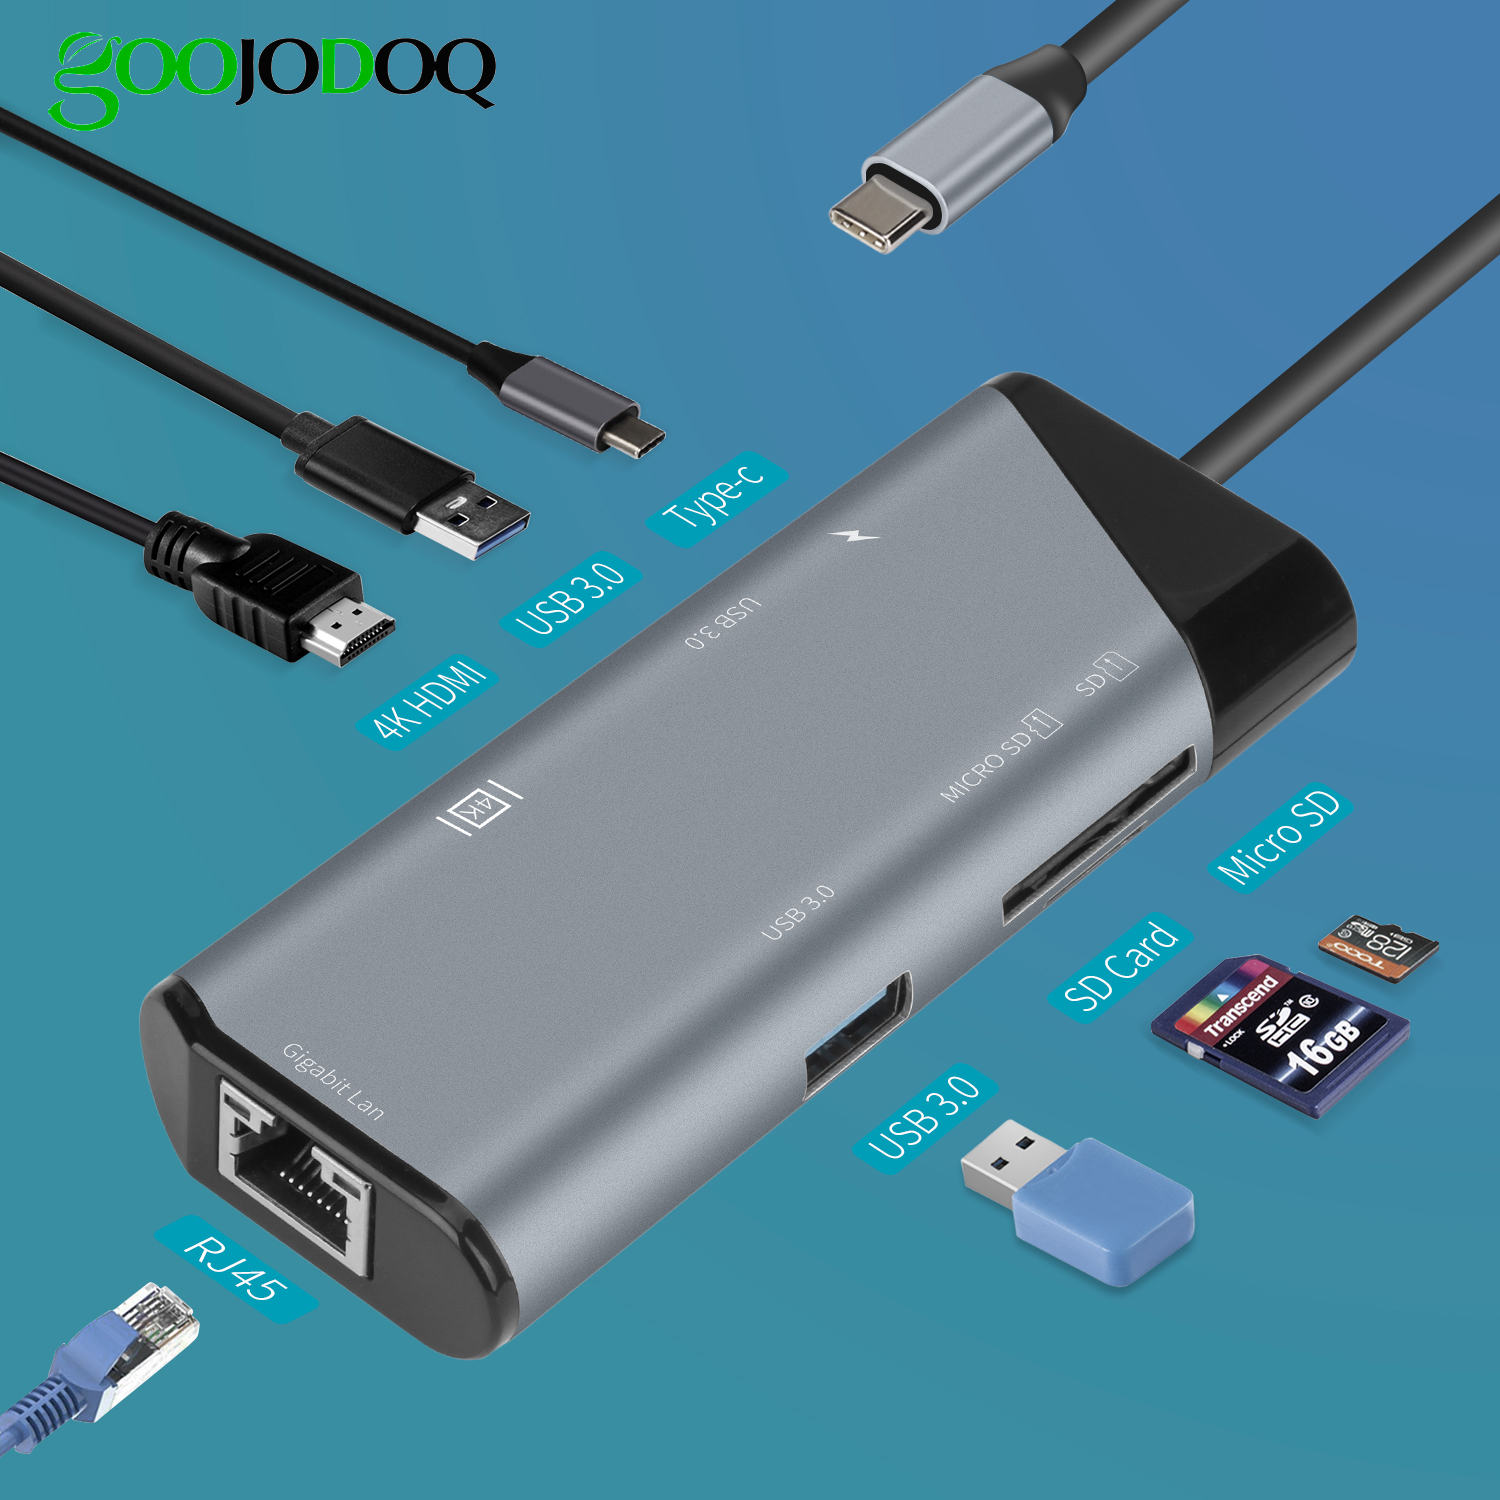 USB C HUB Type C to HDMI 4K Ethernet USB 3.0 SDTF Card For Macbook iPad Pro 2018